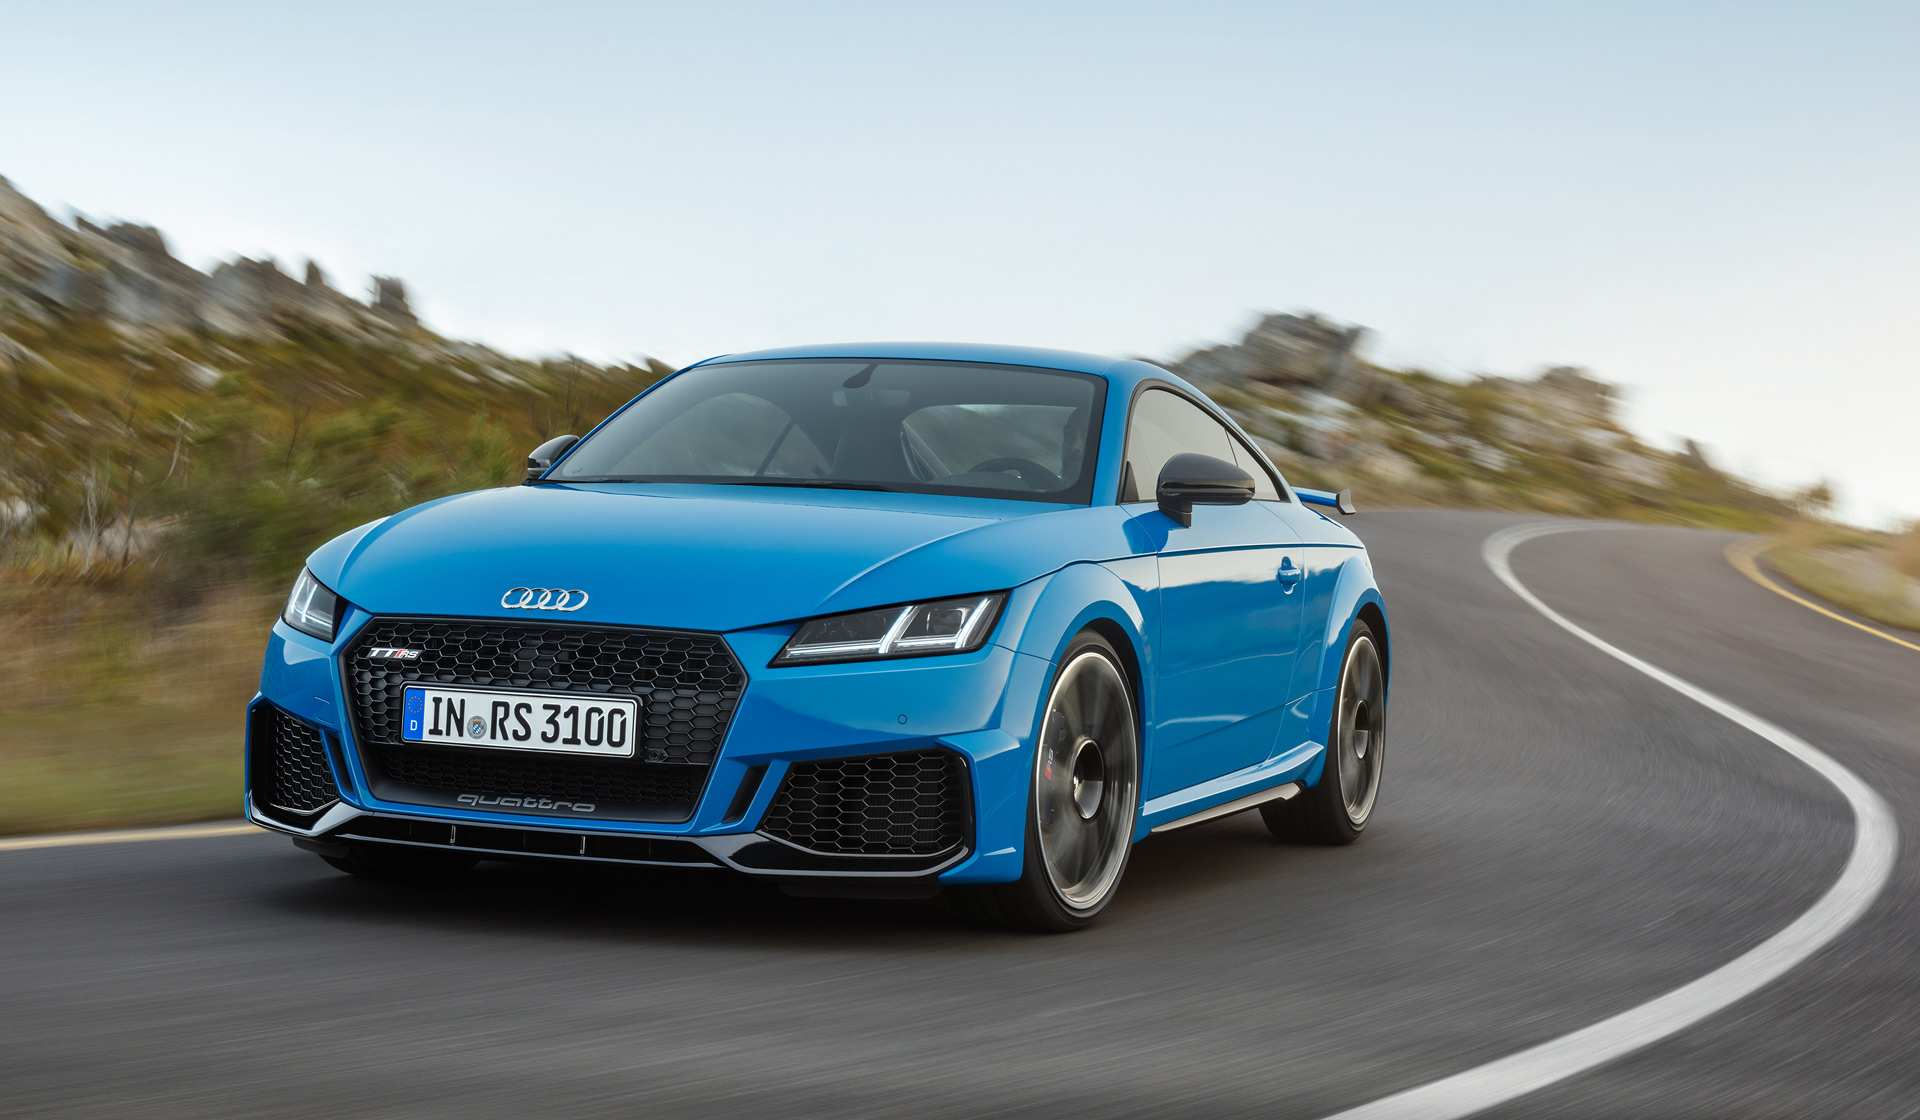 38 Gallery of Audi Tt 2020 Interior Specs by Audi Tt 2020 Interior